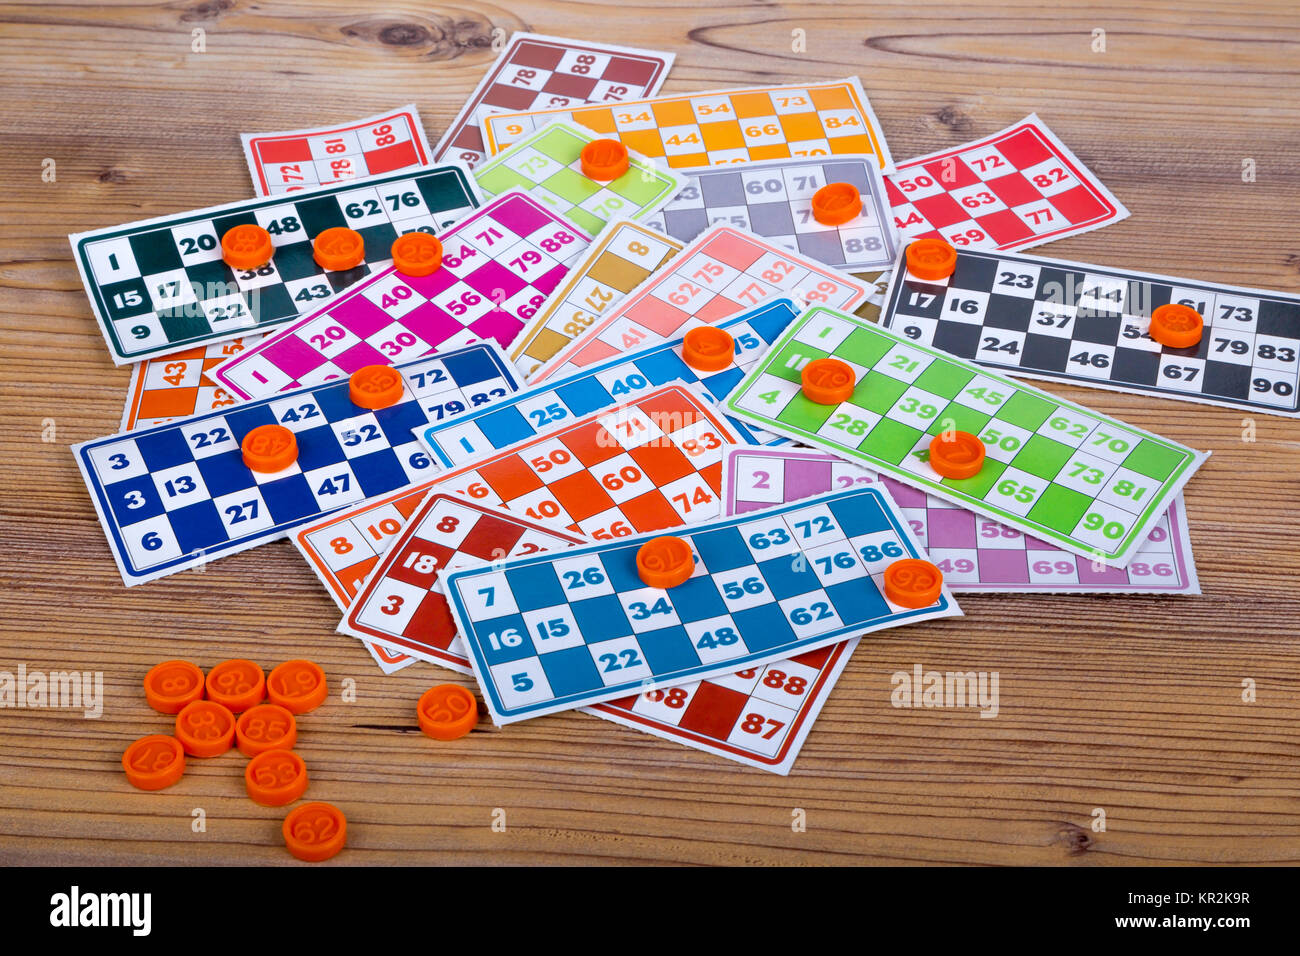 Tombola Lottery Numbers Stock Photos & Tombola Lottery